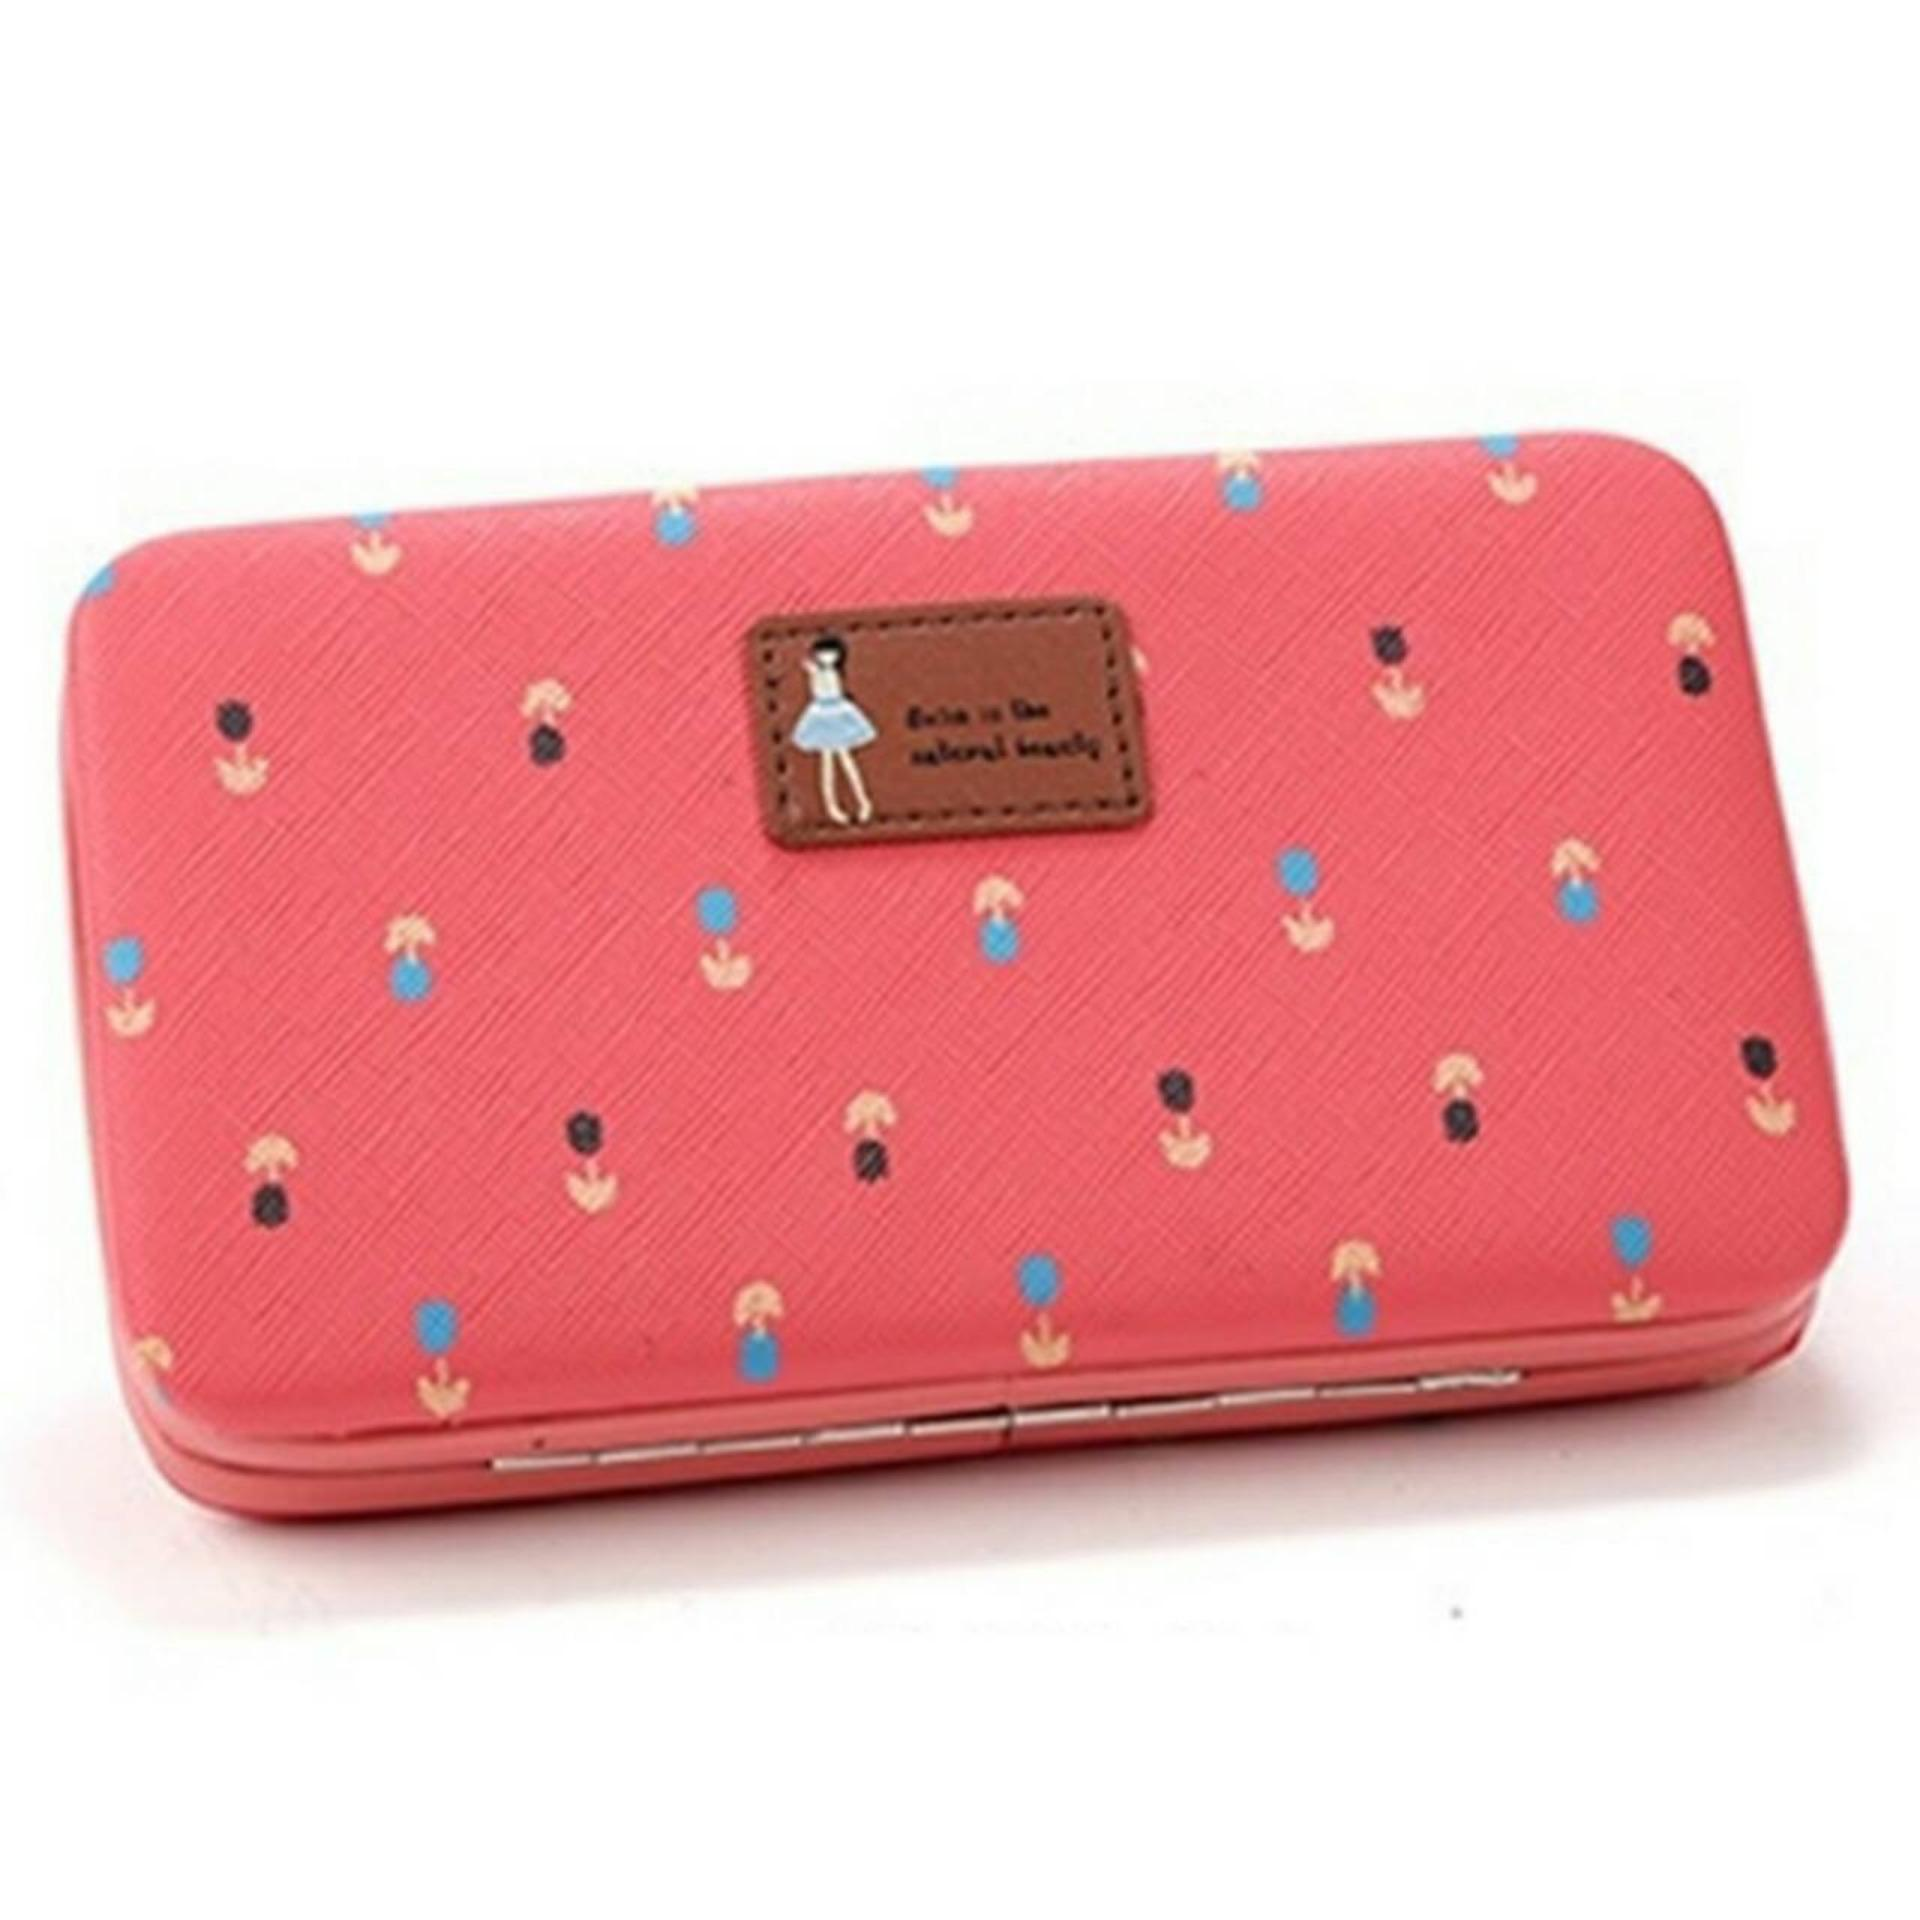 Jual Jims Honey Best Seller Wallet Import Lady Wallet Peach Antik